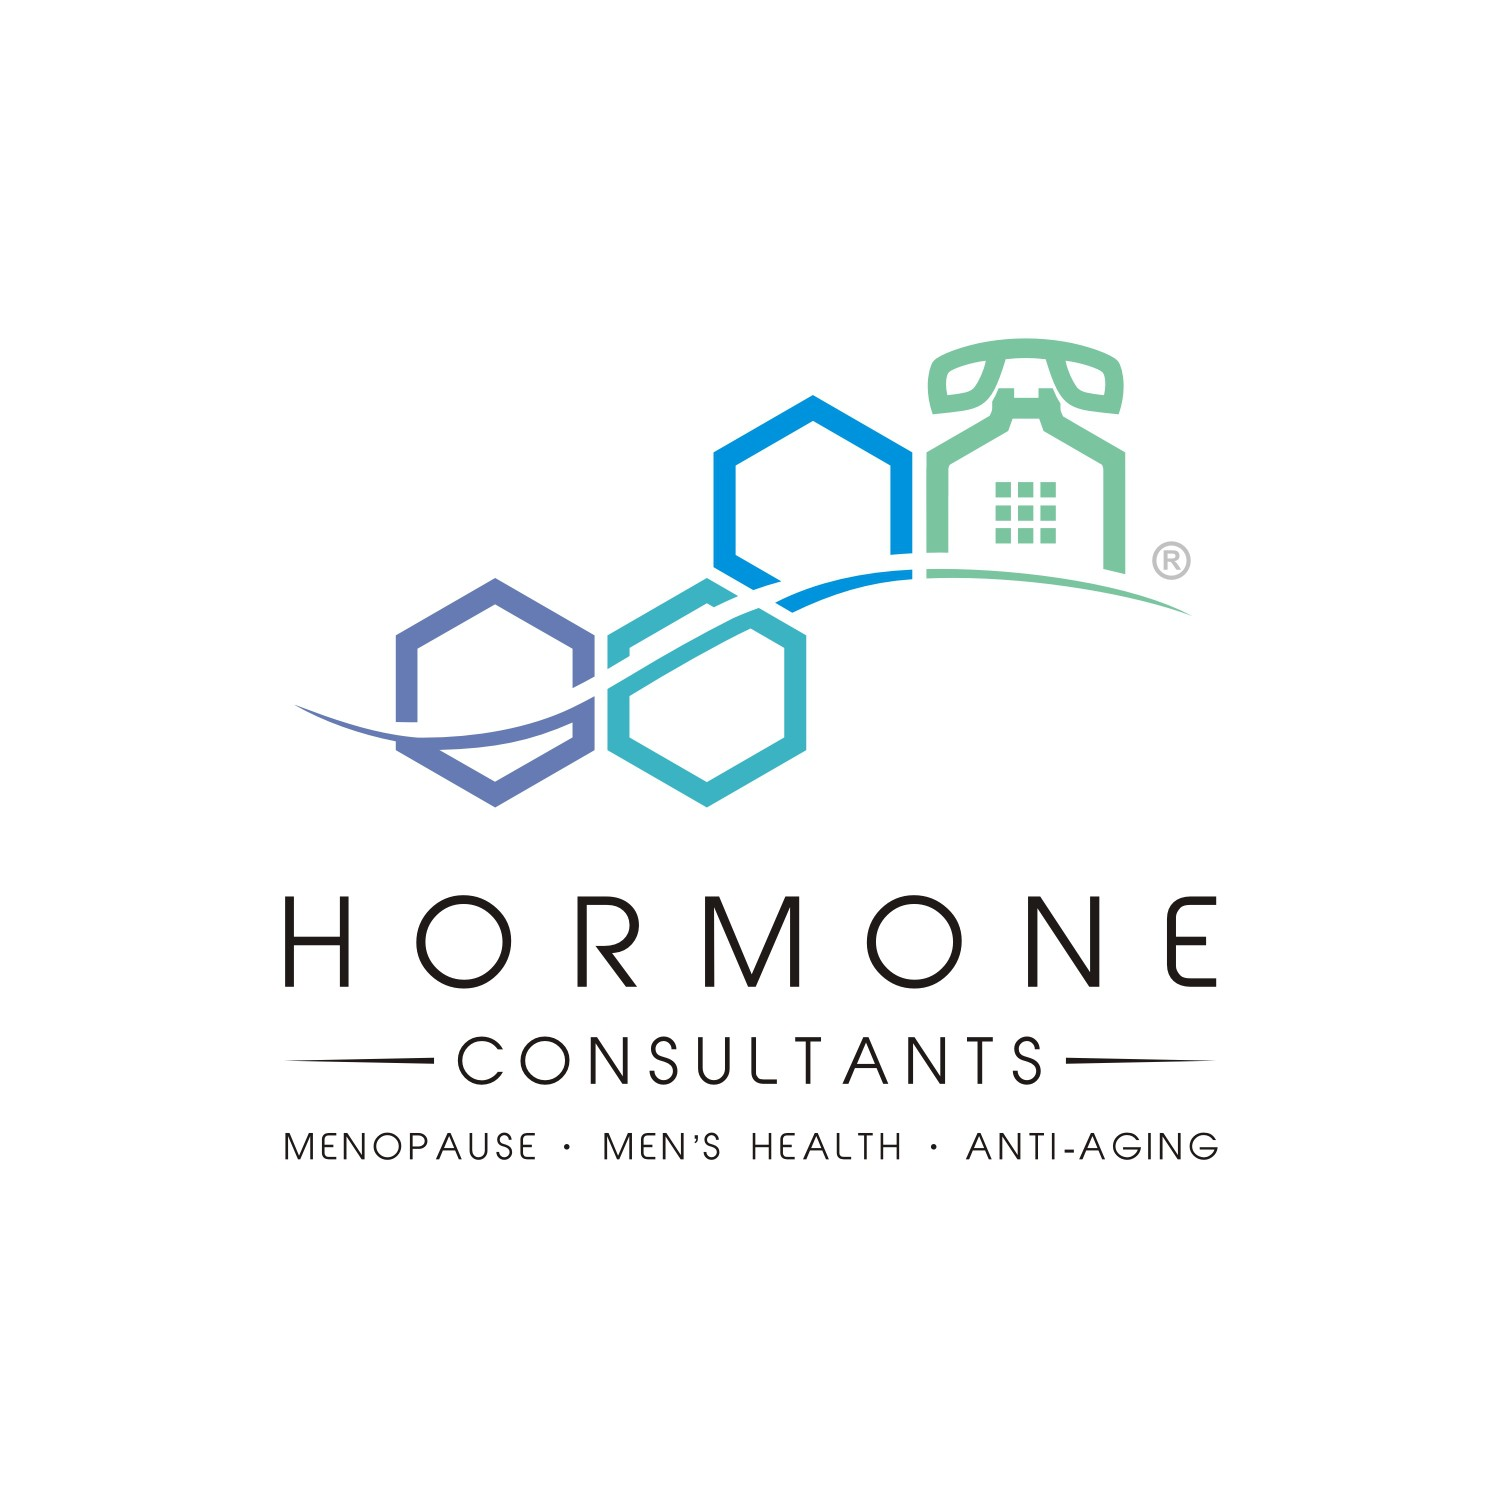 Hormones by Phone logo and logo guide